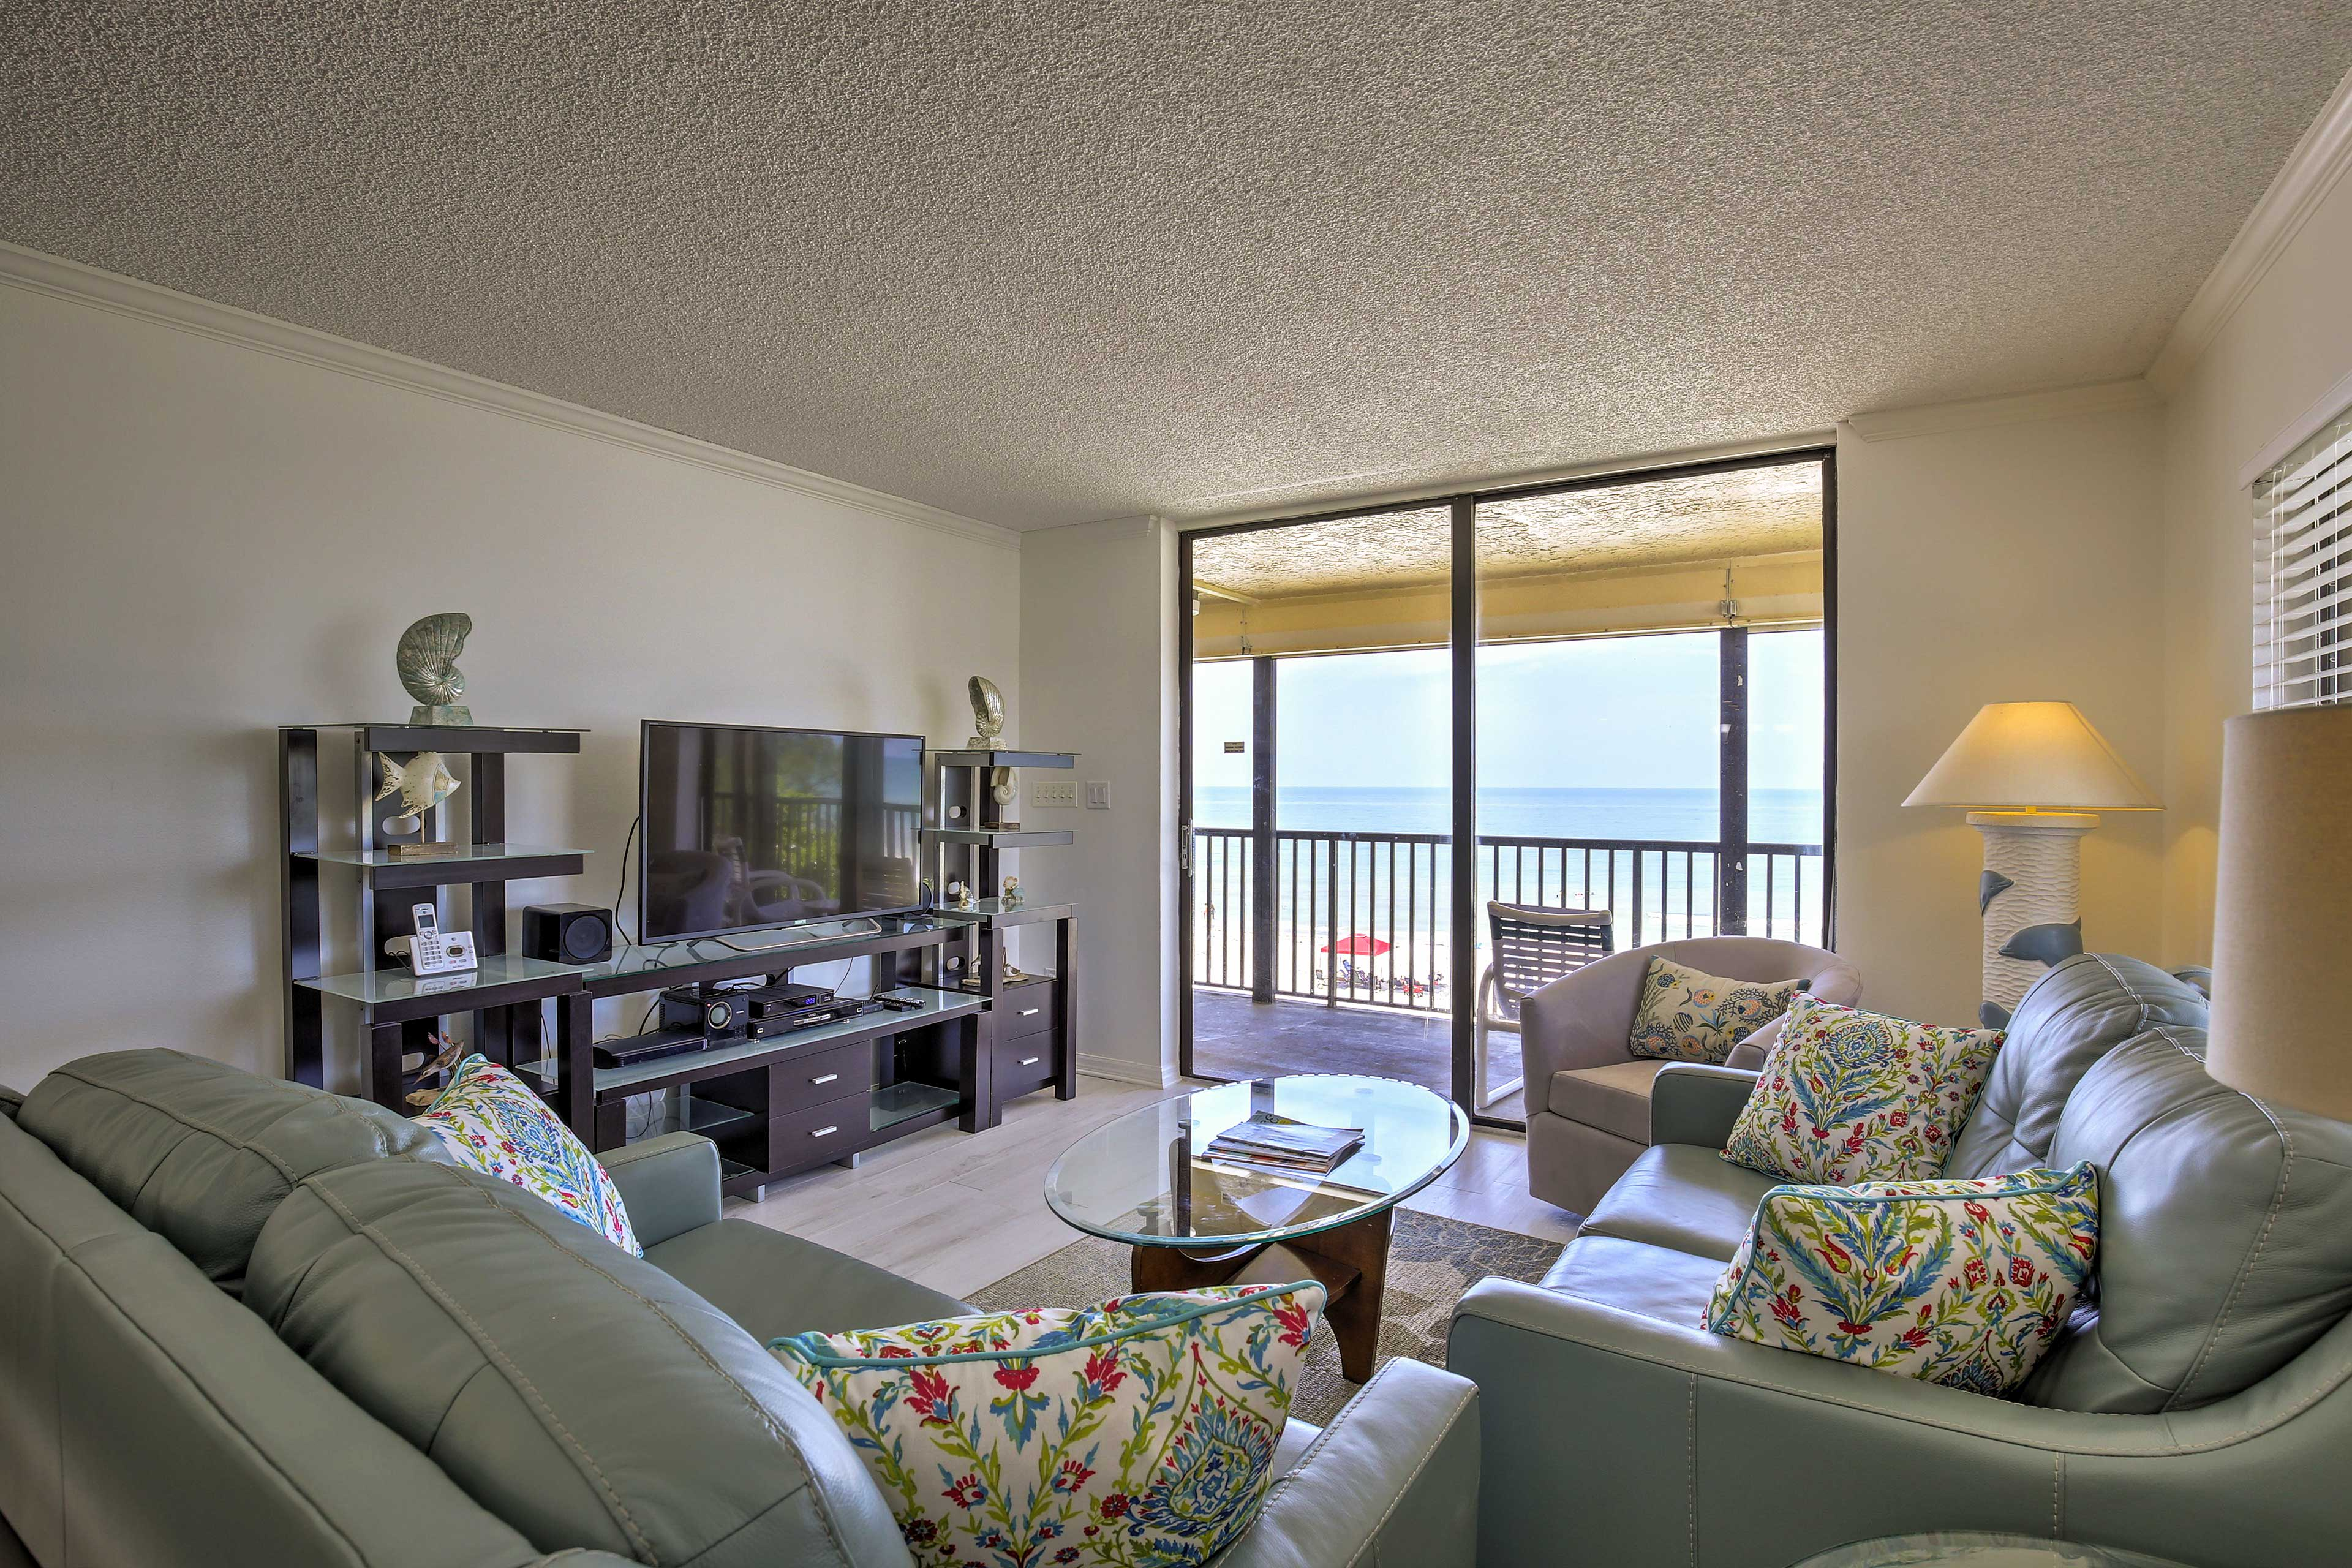 Inside offers 3 bedrooms and 2 bathrooms.